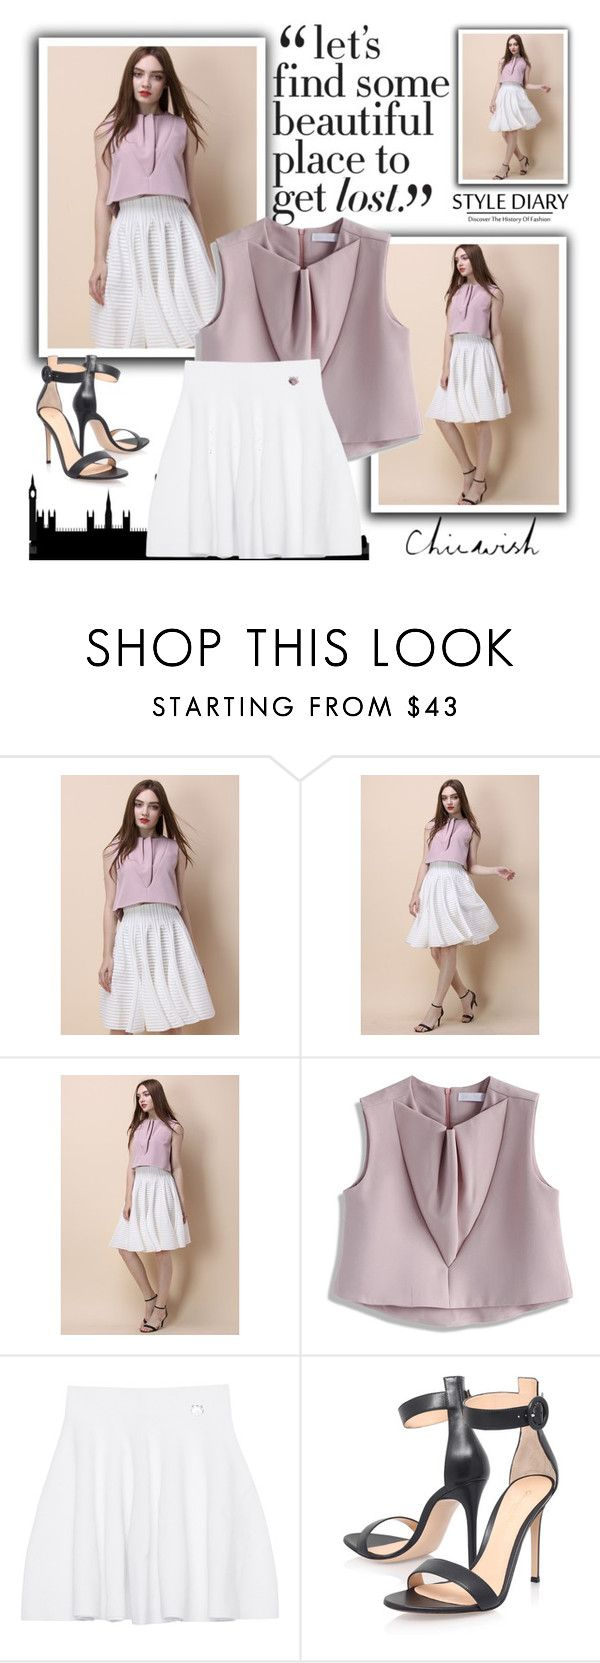 """""""ChicWish"""" by lejal-deljic ❤ liked on Polyvore featuring Chicwish, Kenzo and Gianvito Rossi"""